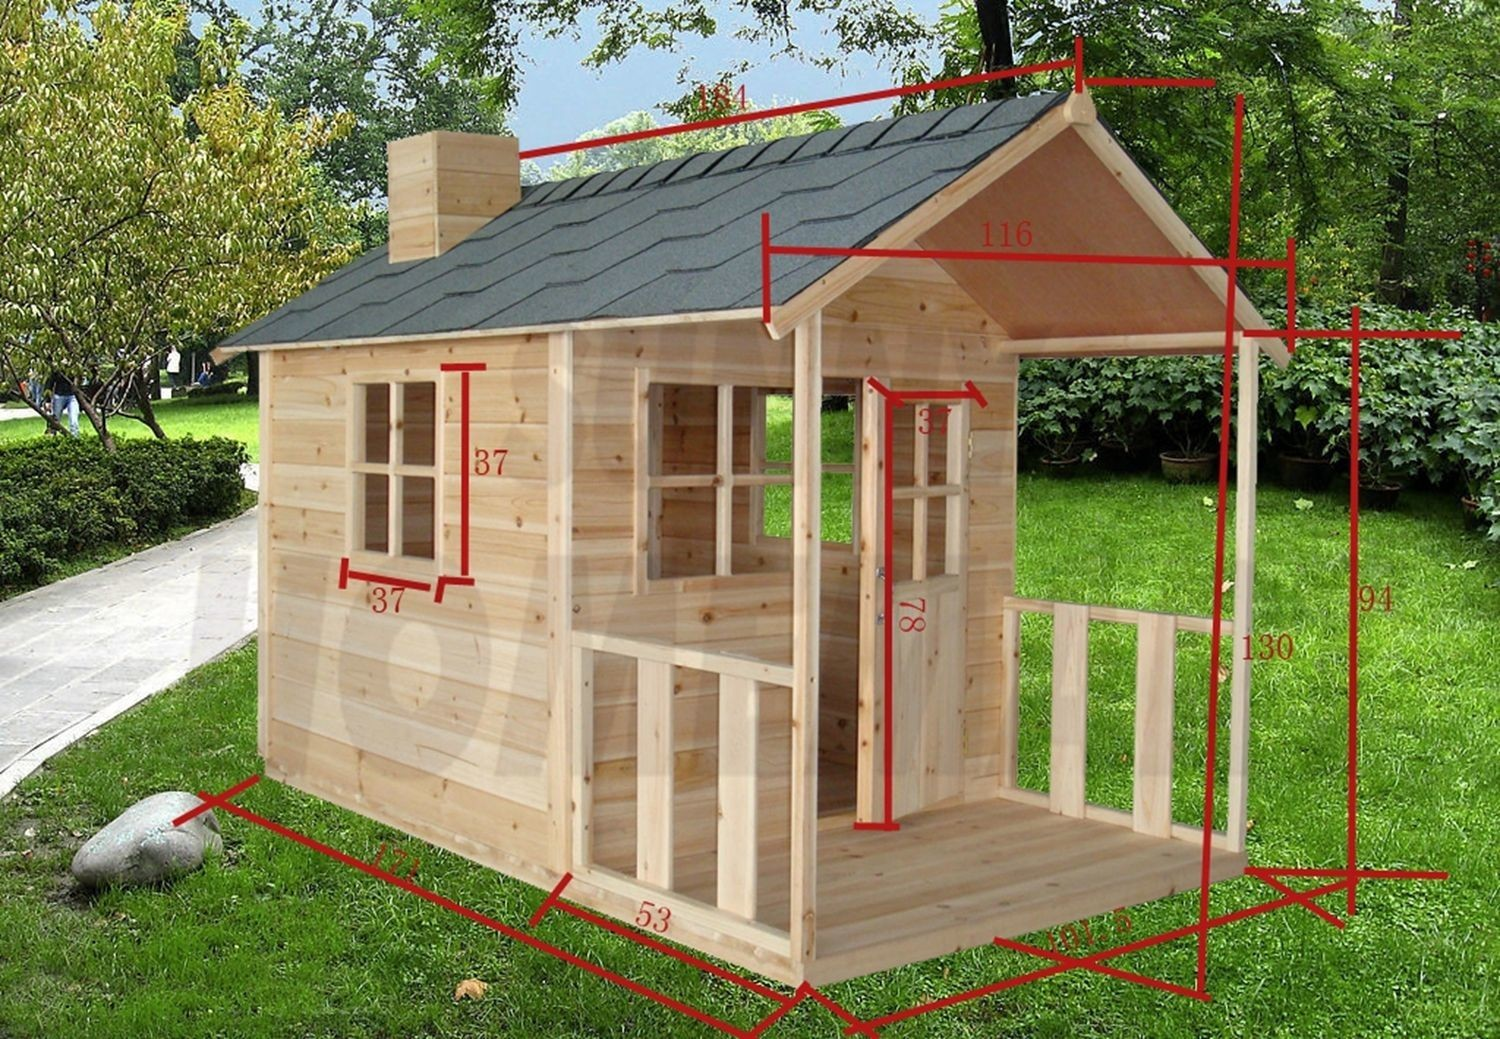 White Angel Outdoor Playhouse Wooden Cubby House And Windows - Cubby house